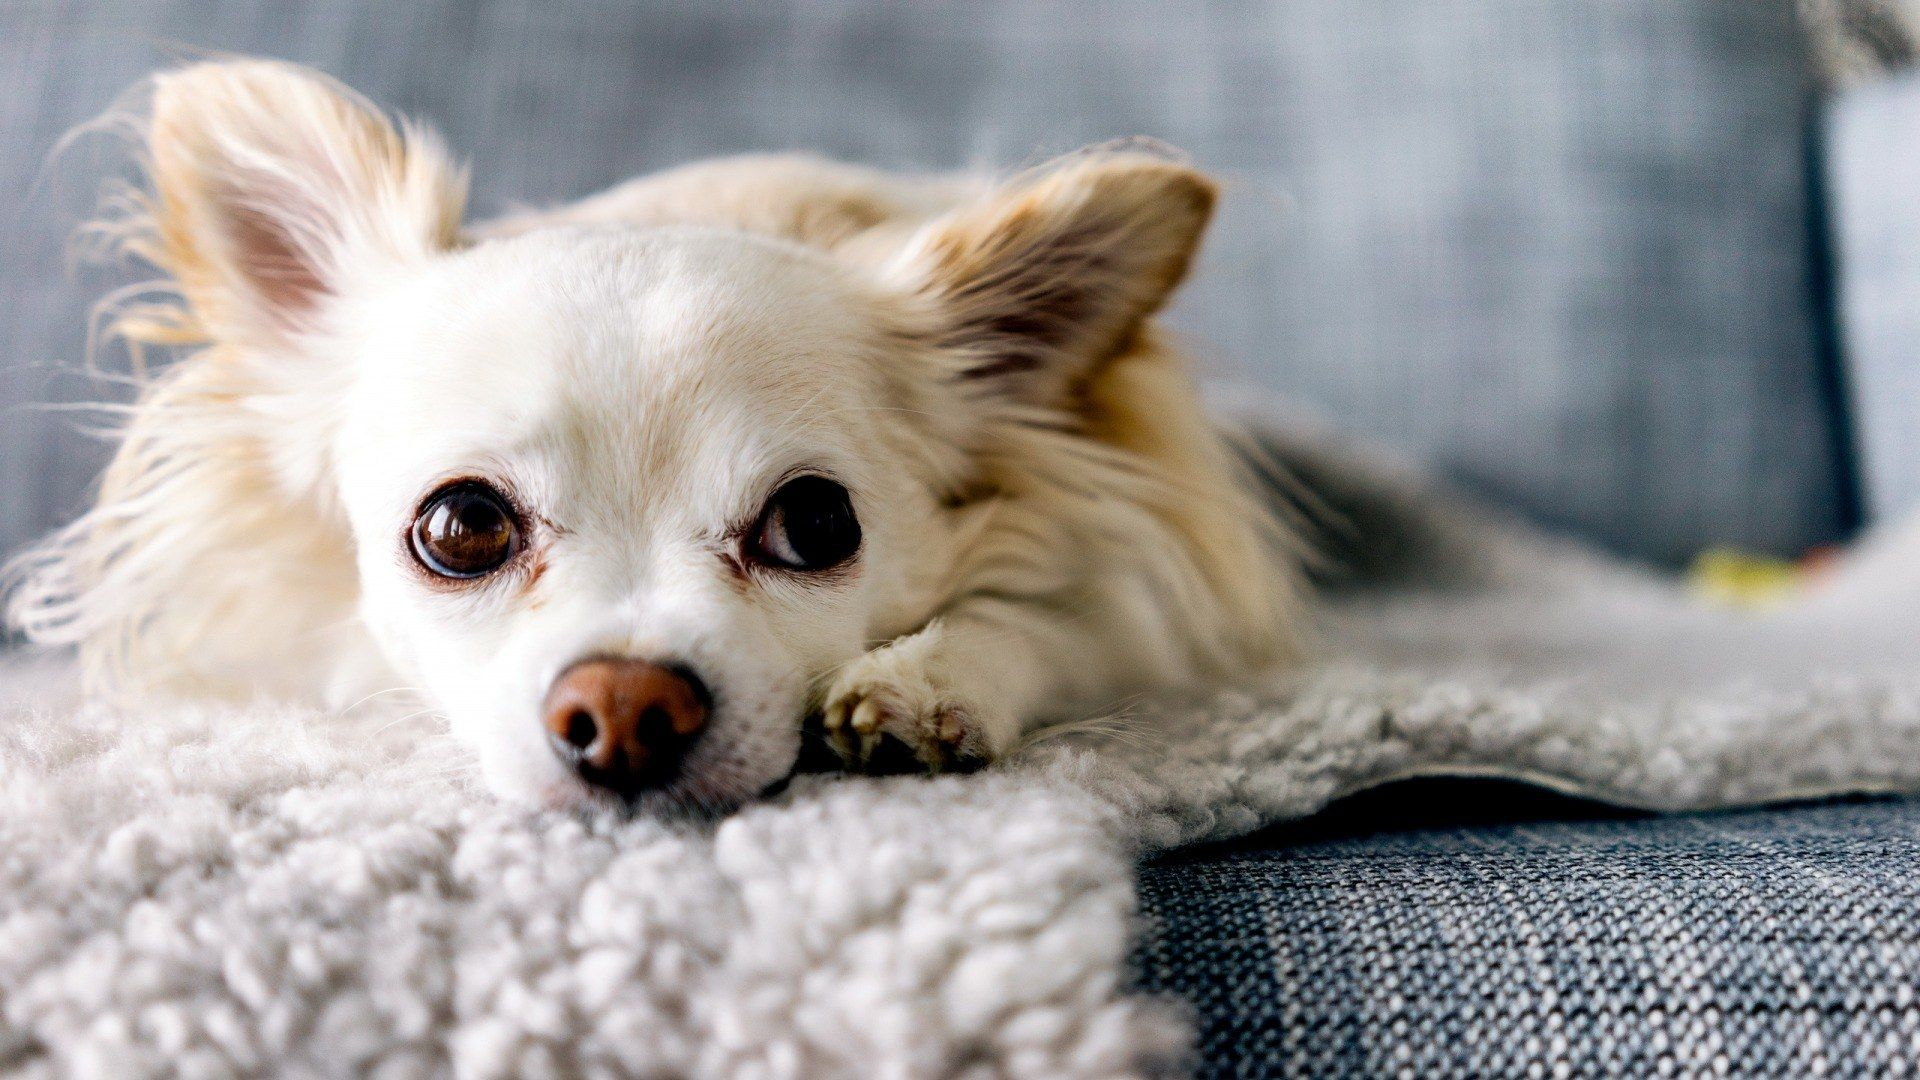 Of Wallpapers Images Chihuahua Long Haired